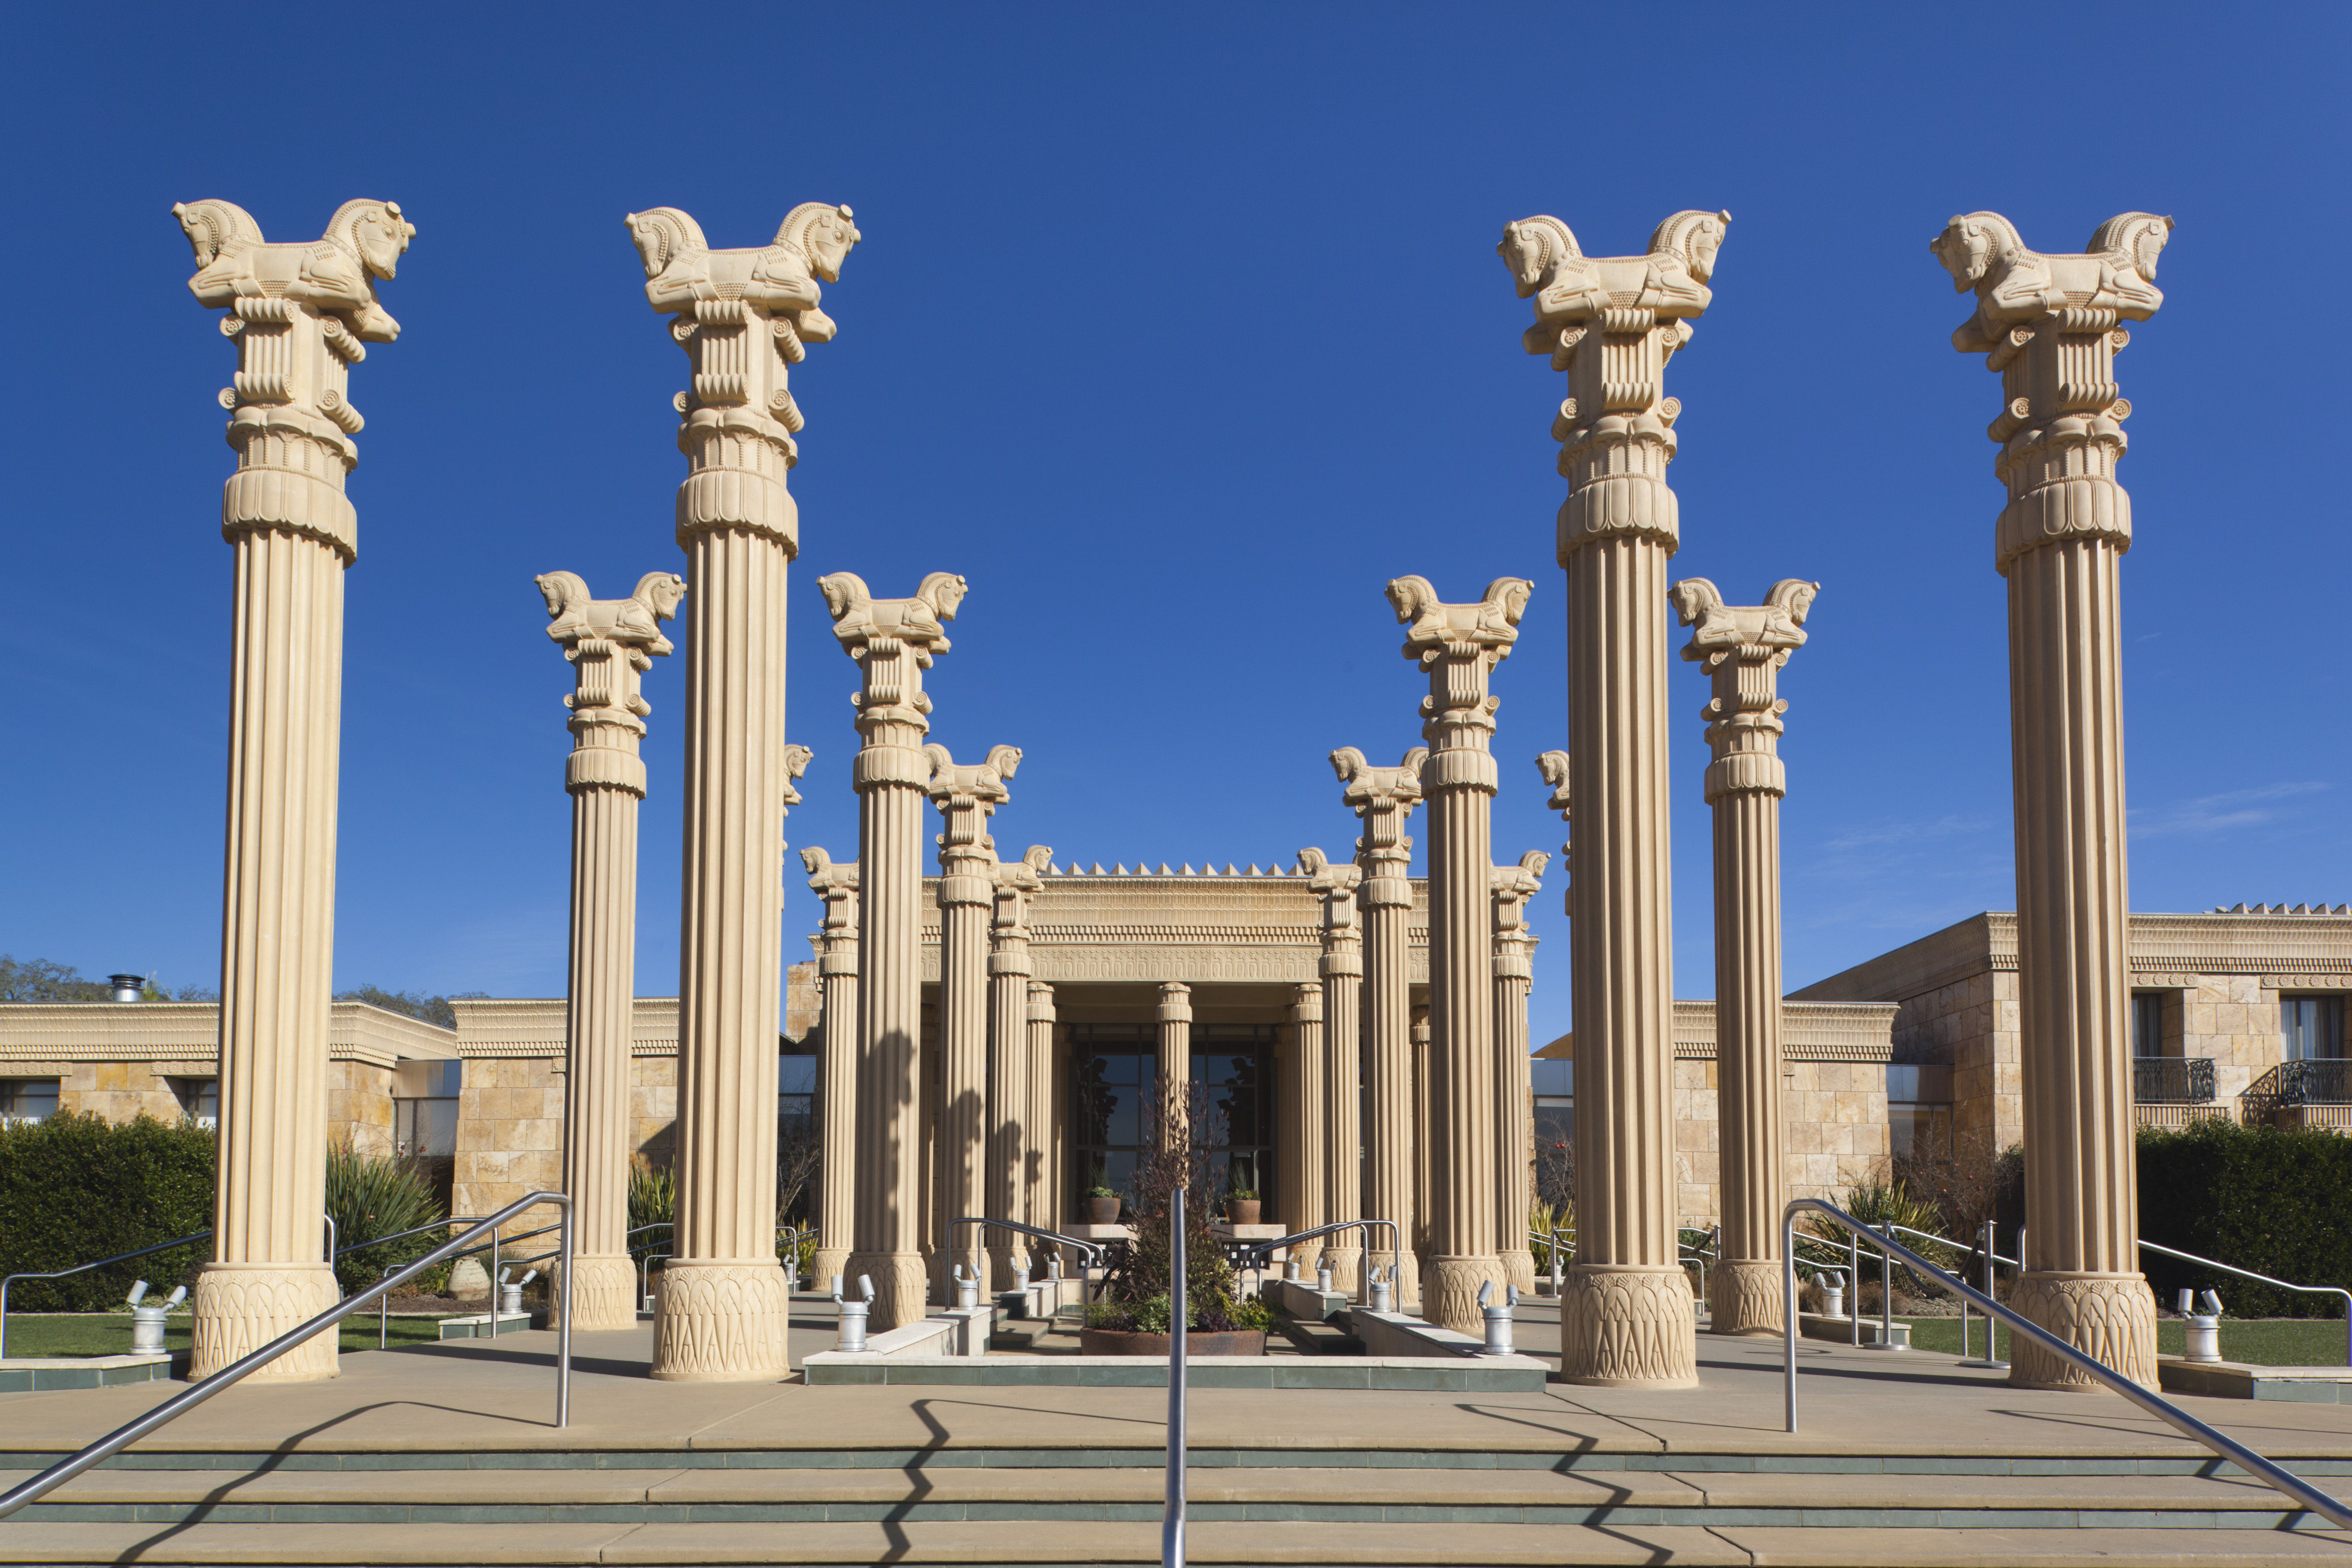 over a dozen Persian columns with fluted shafts and doublt horse head capitals